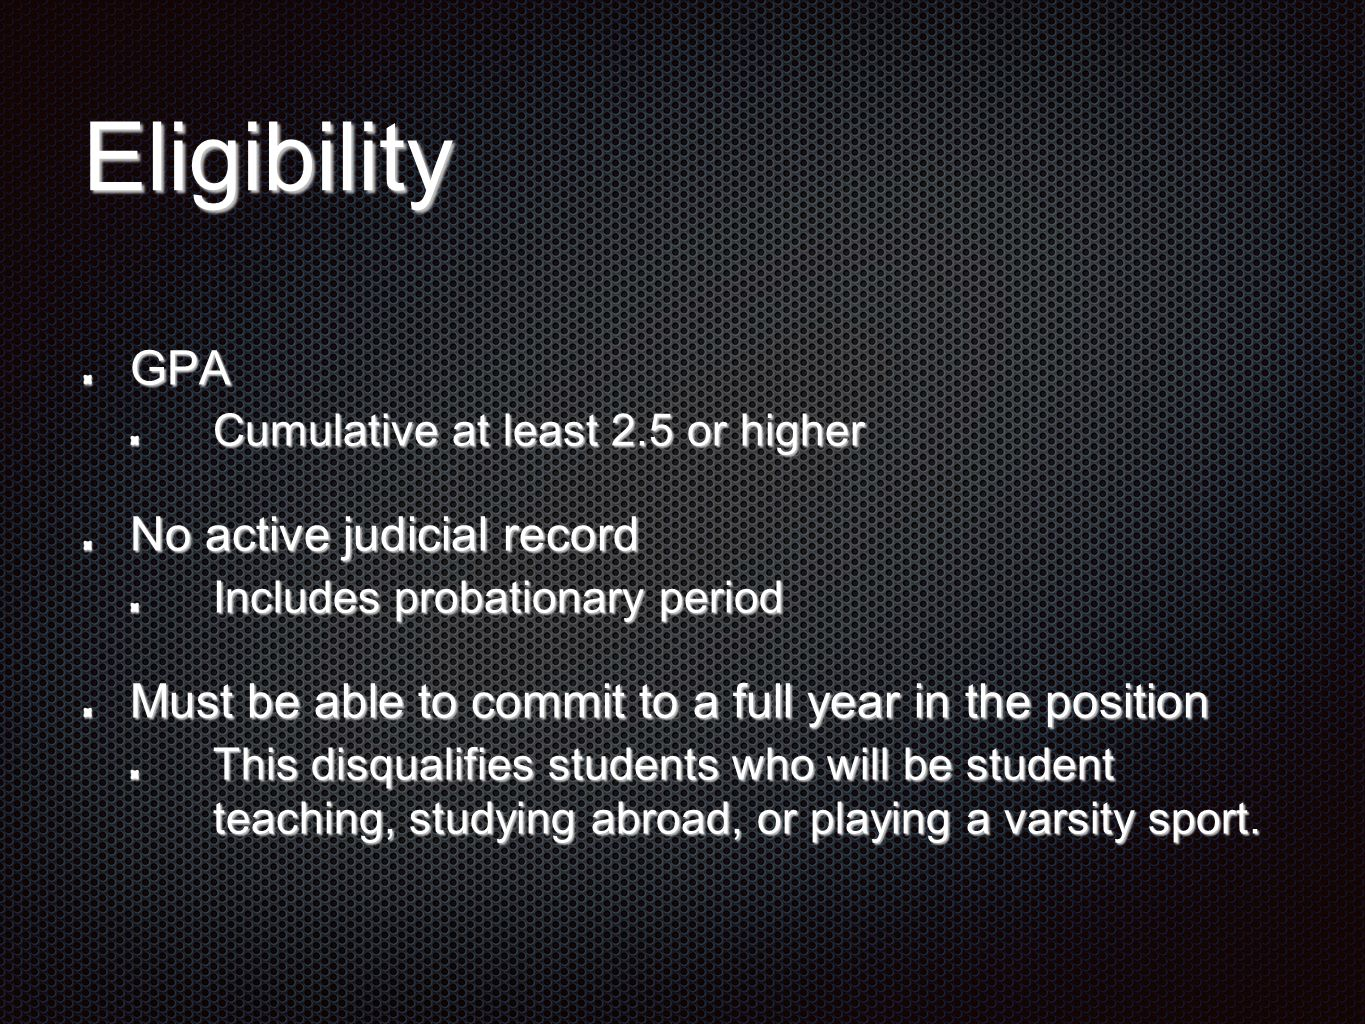 Eligibility GPA Cumulative at least 2.5 or higher No active judicial record Includes probationary period Must be able to commit to a full year in the position This disqualifies students who will be student teaching, studying abroad, or playing a varsity sport.